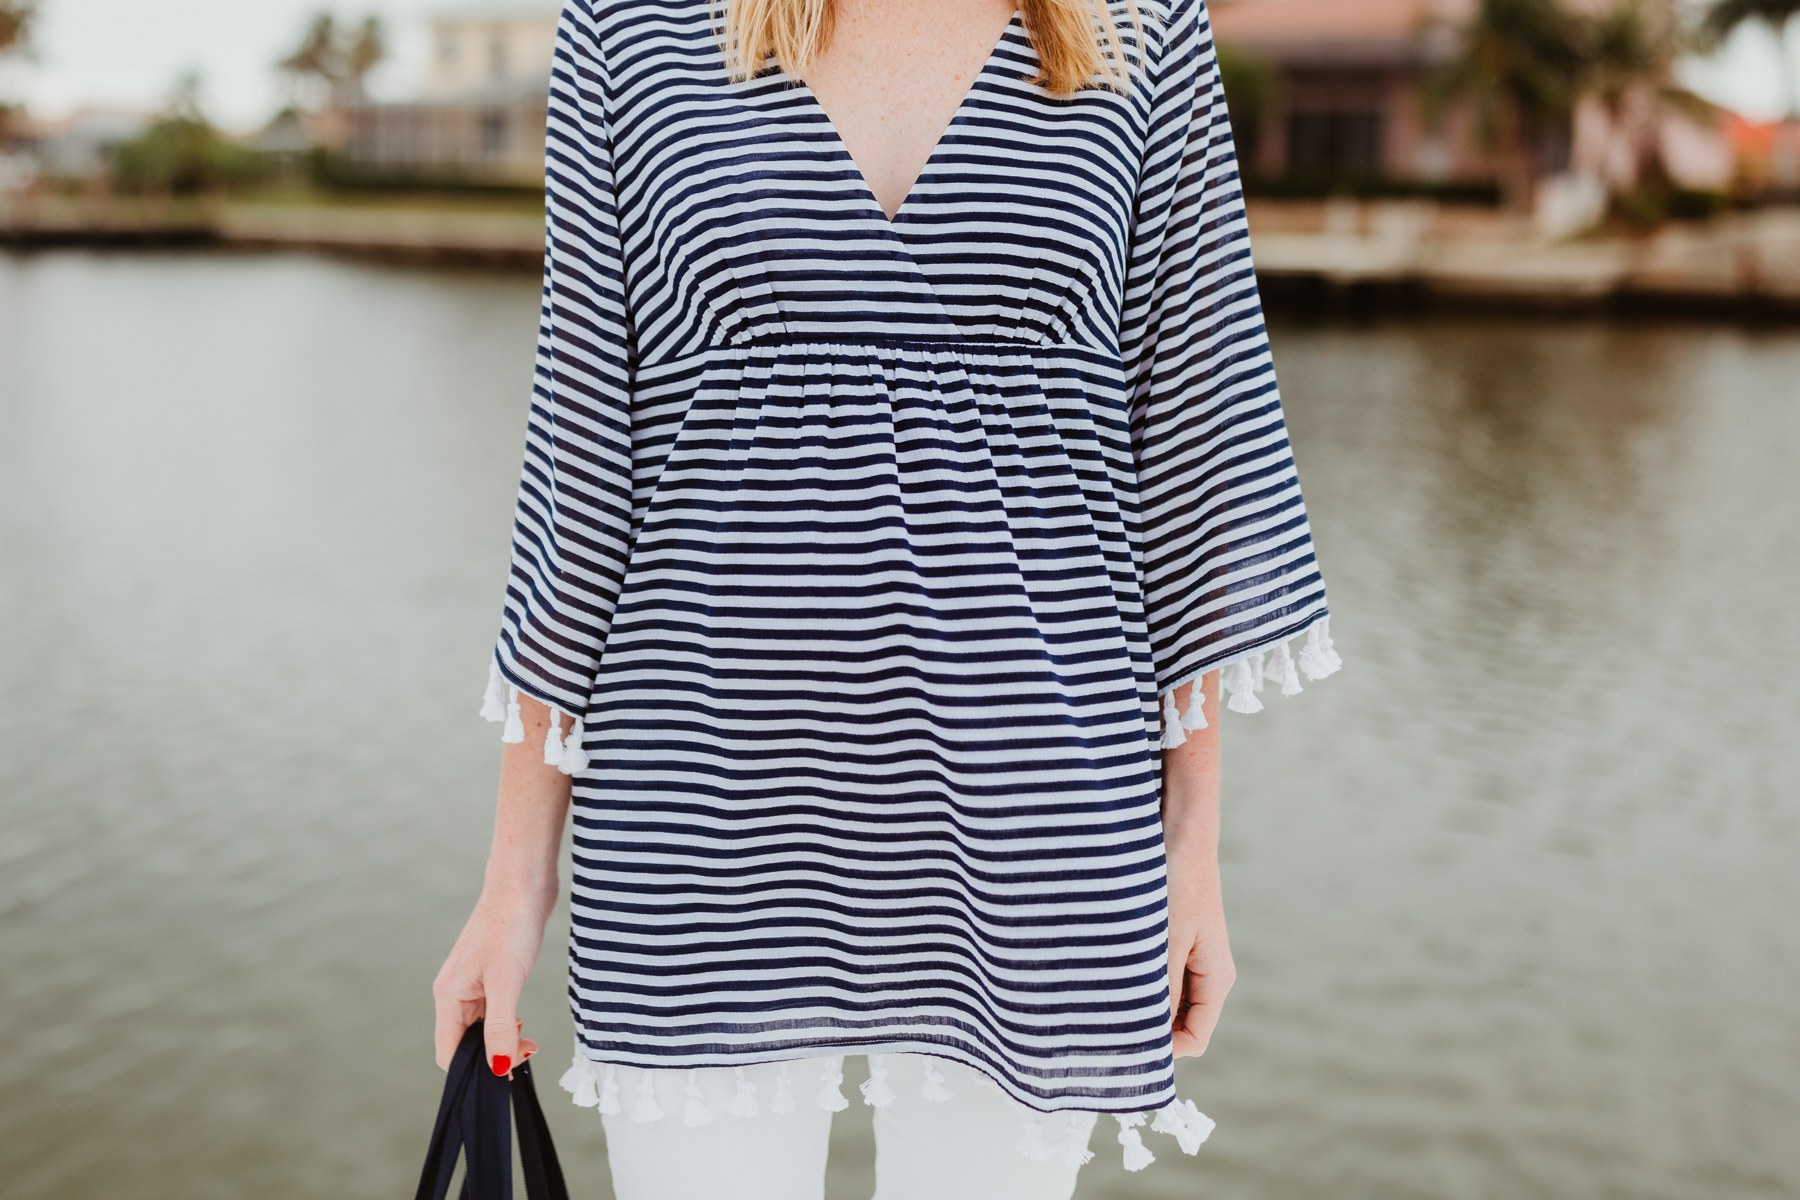 Sail to Sable Crinkle Cotton Tunic Top